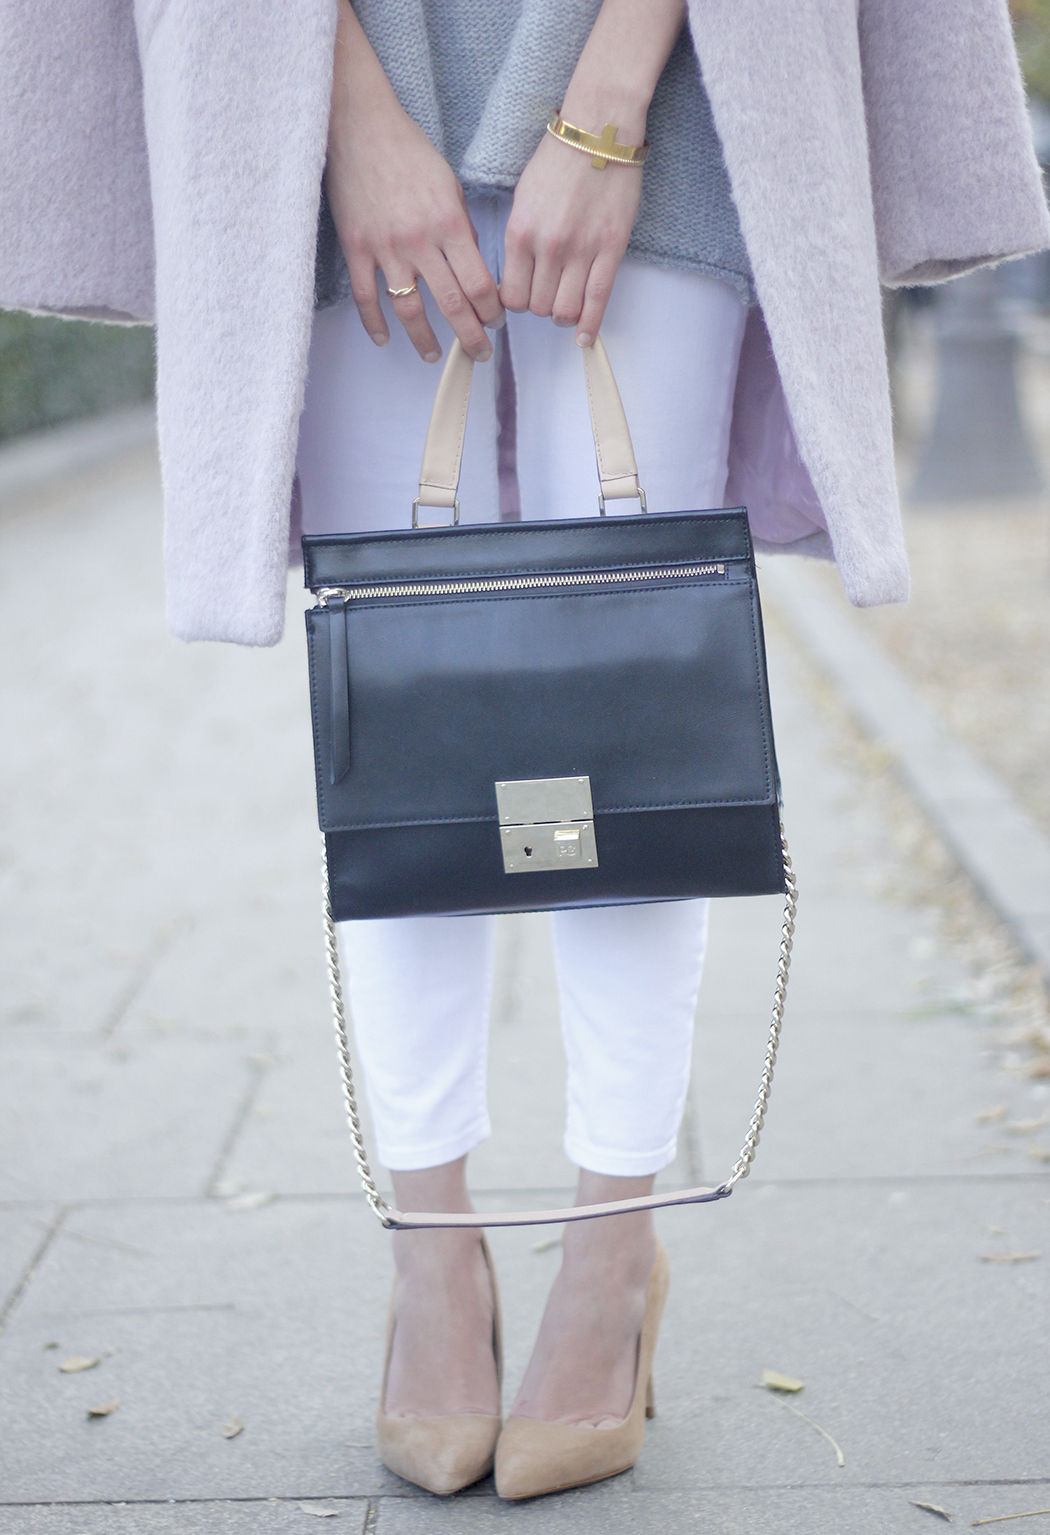 Tintoretto Pink Coat white jeans grey sweater outfit02